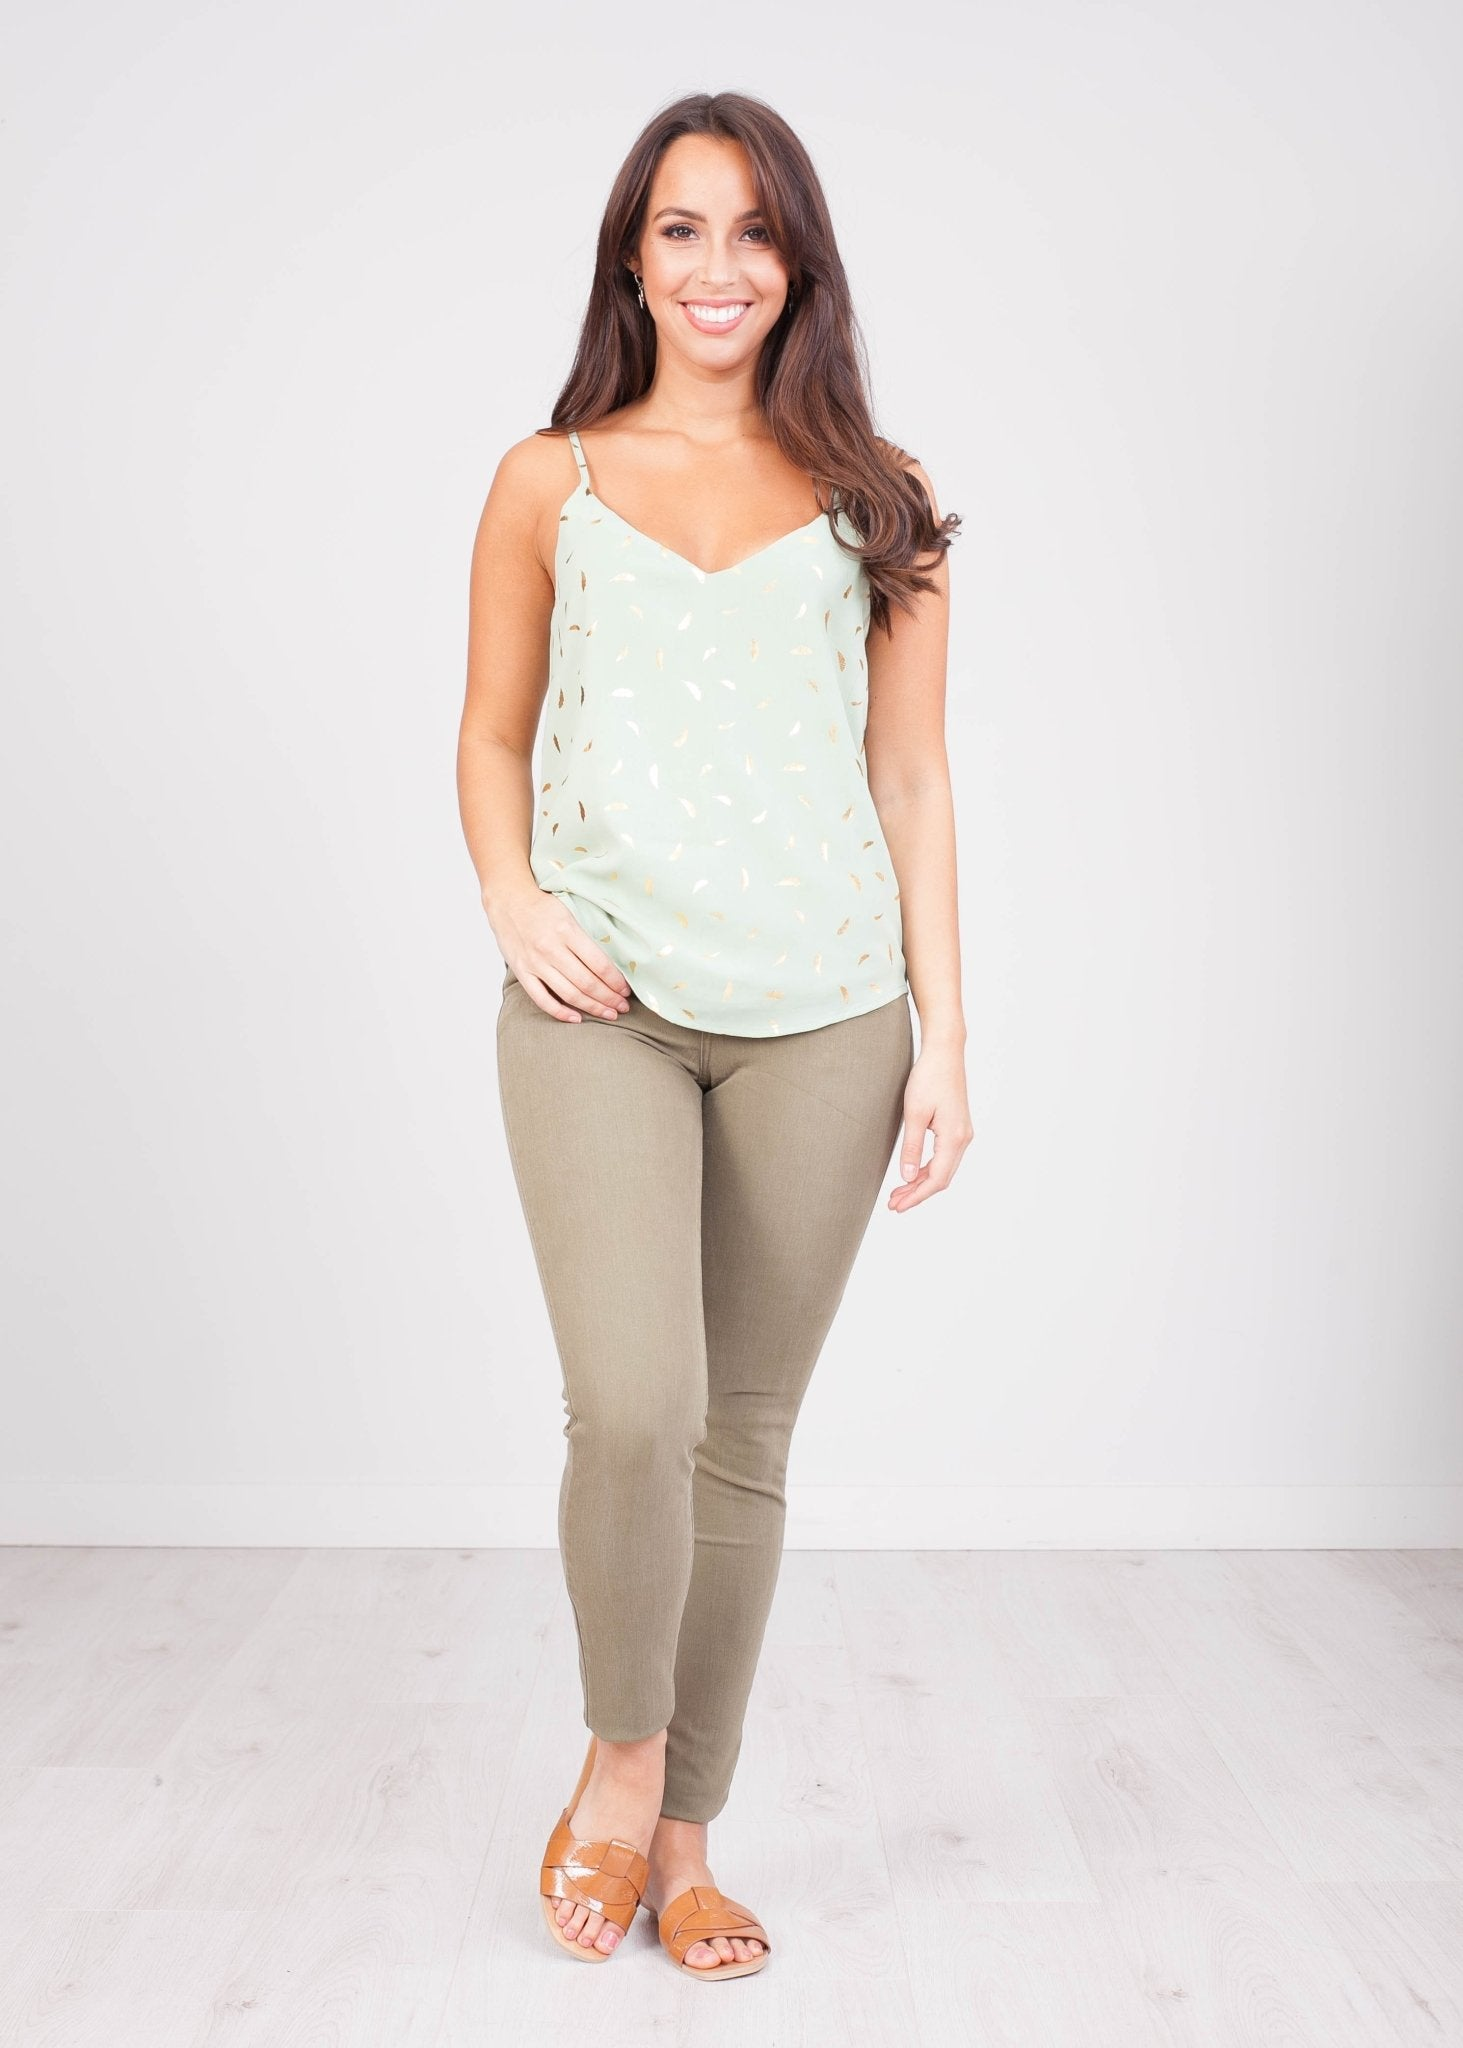 Priya Green Cami - The Walk in Wardrobe